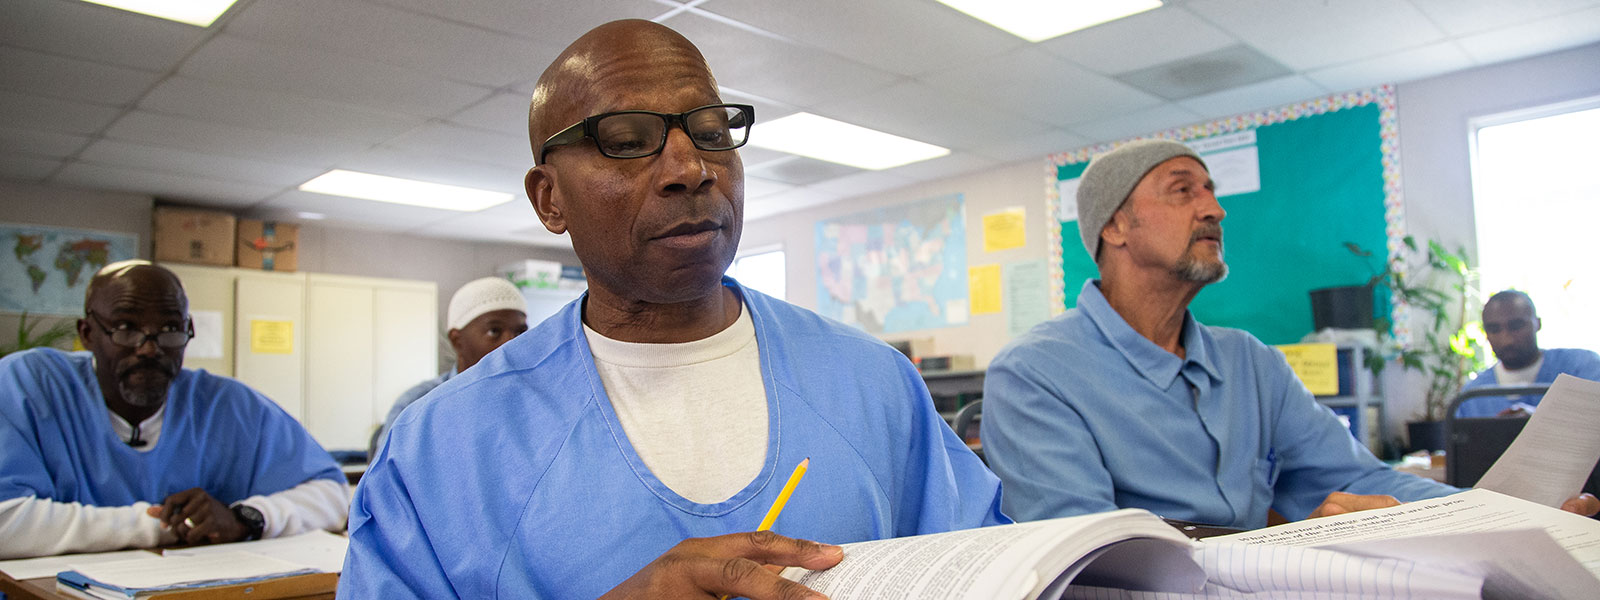 Students in the classroom at San Quentin